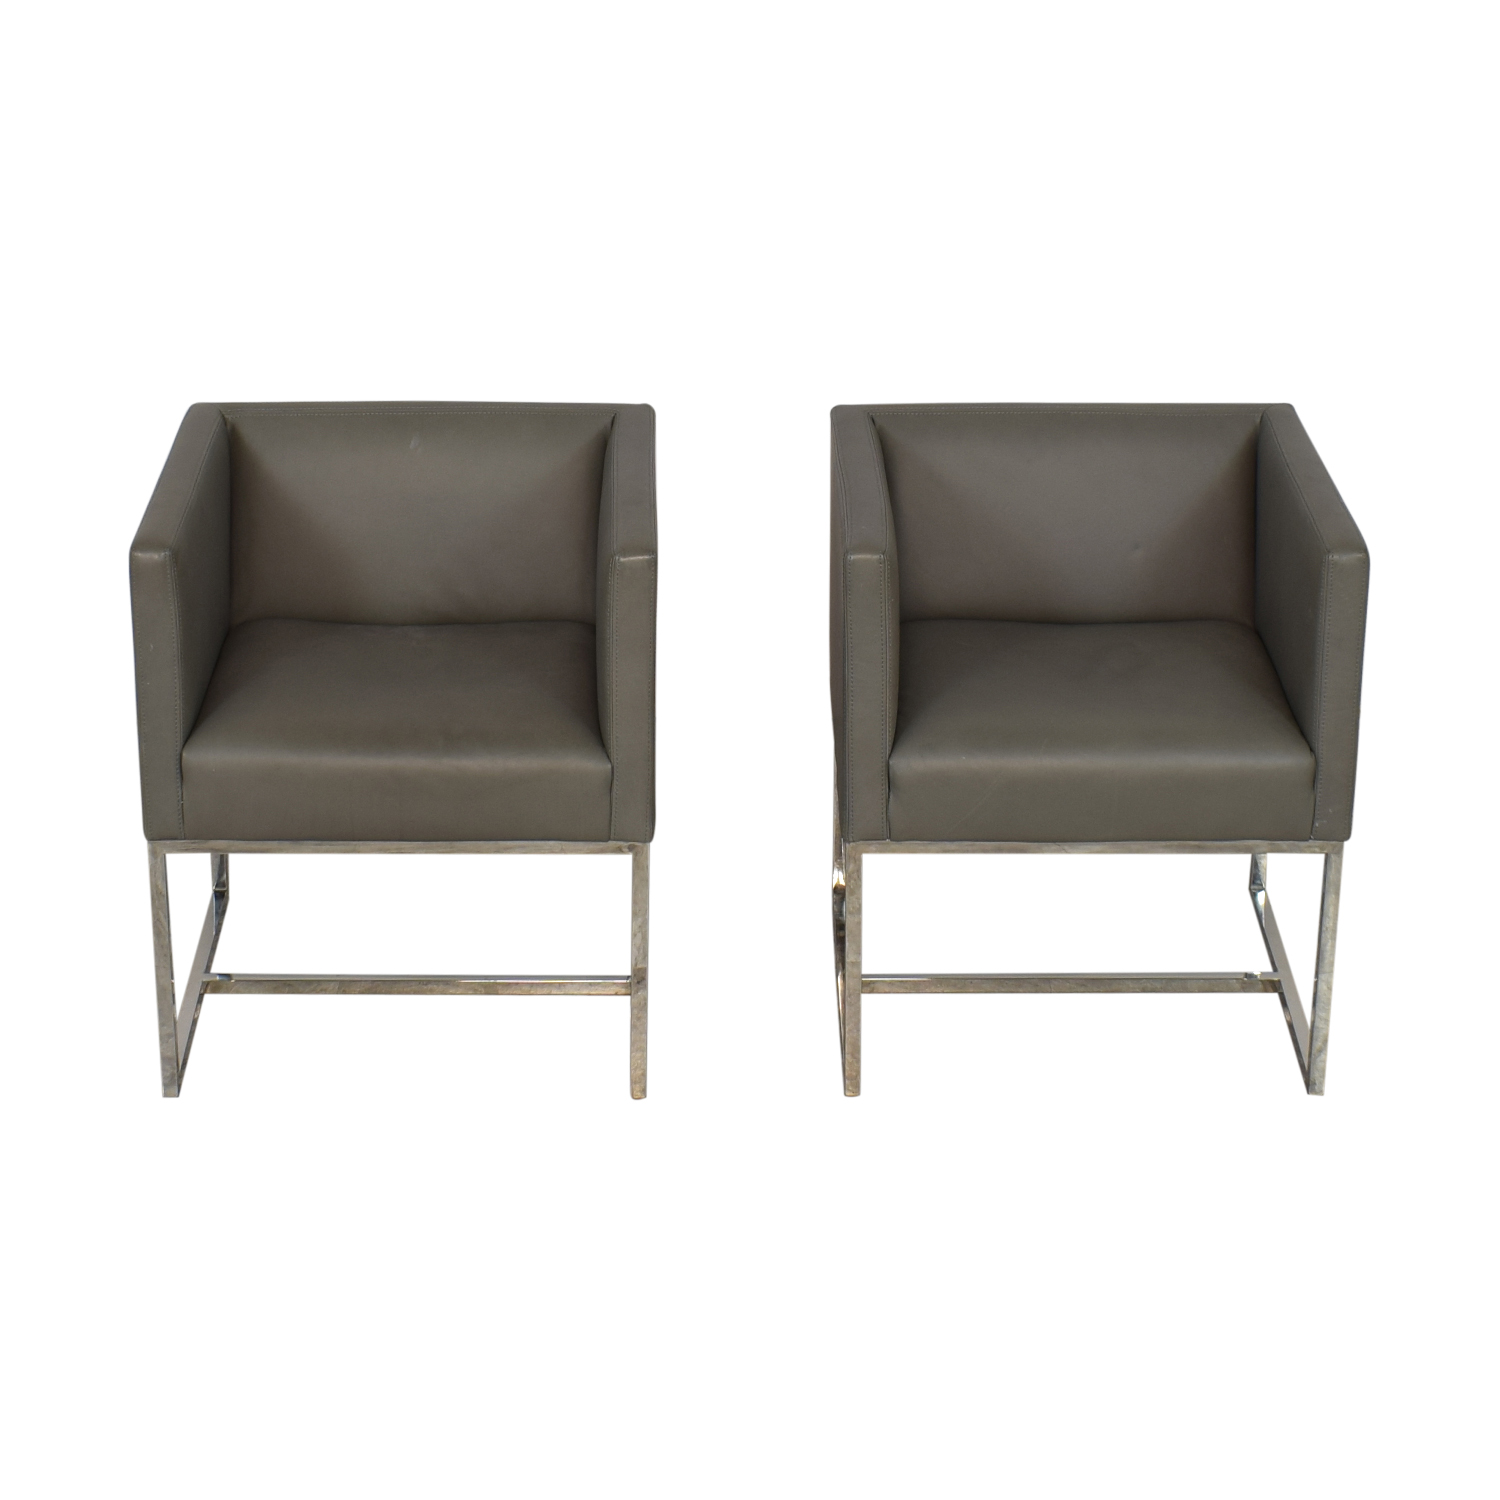 Restoration Hardware Emery Shelter Arm Chairs / Chairs